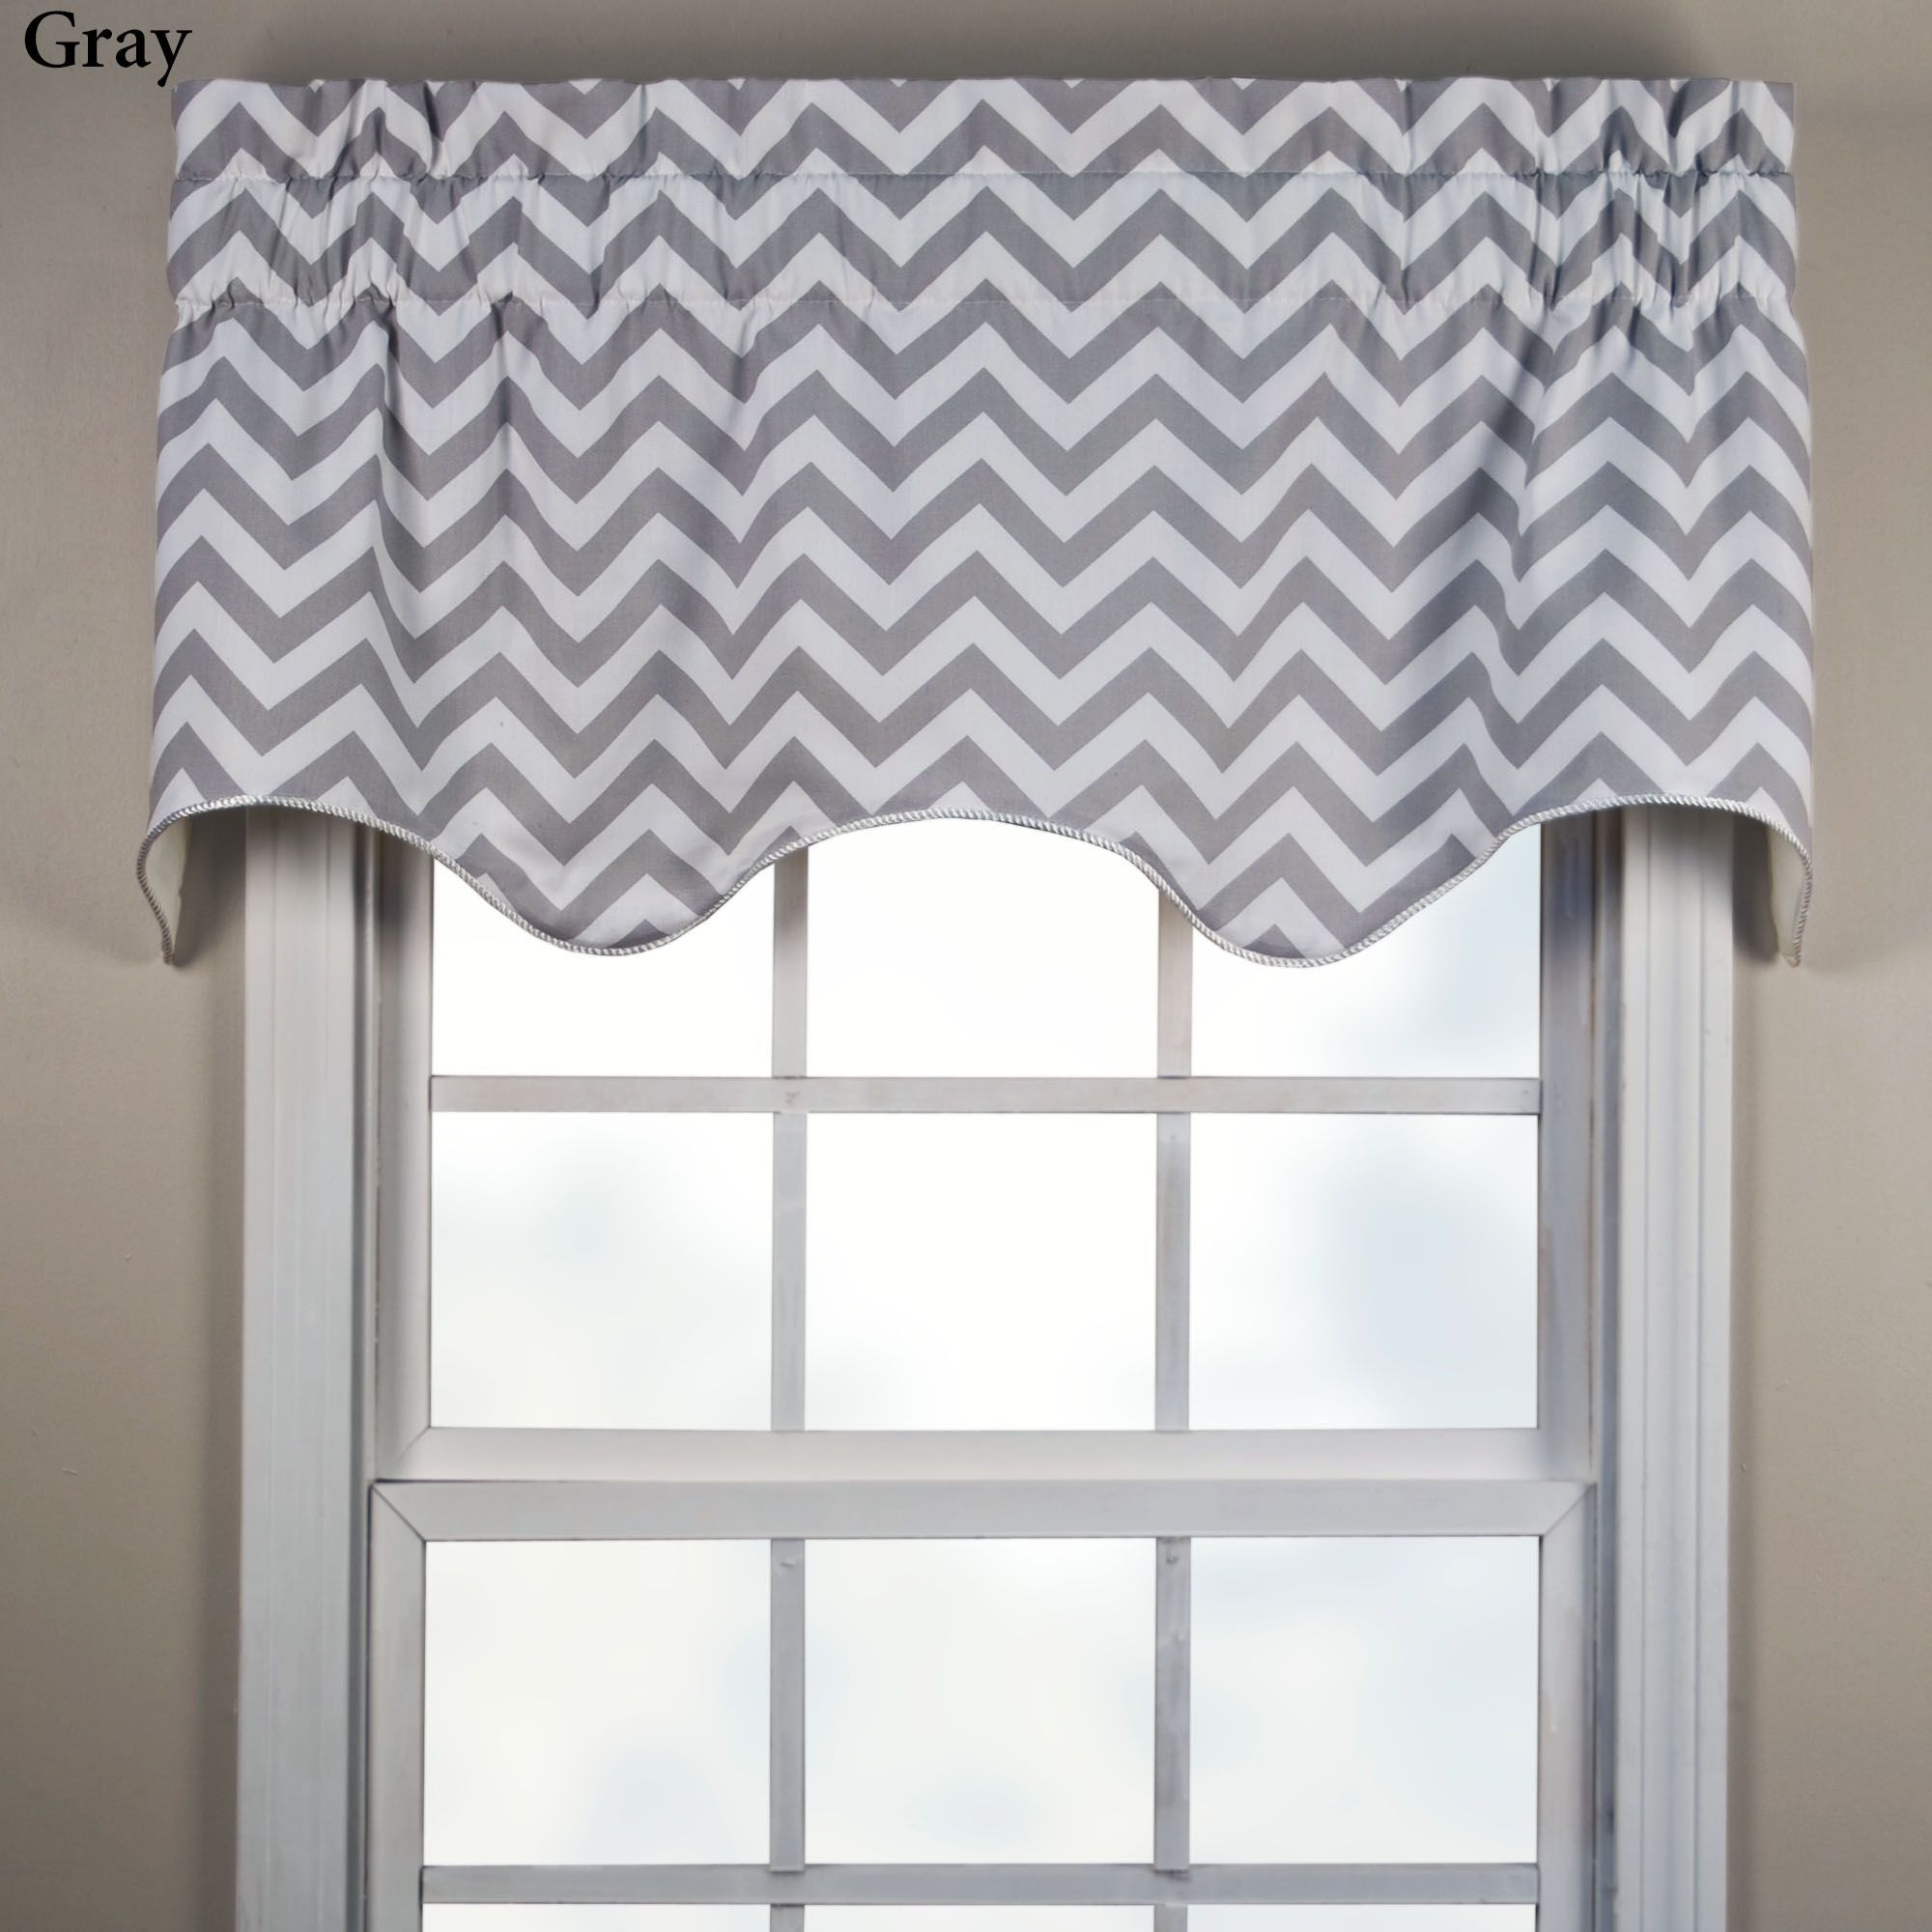 Reston chevron scalloped window valance valance window and room